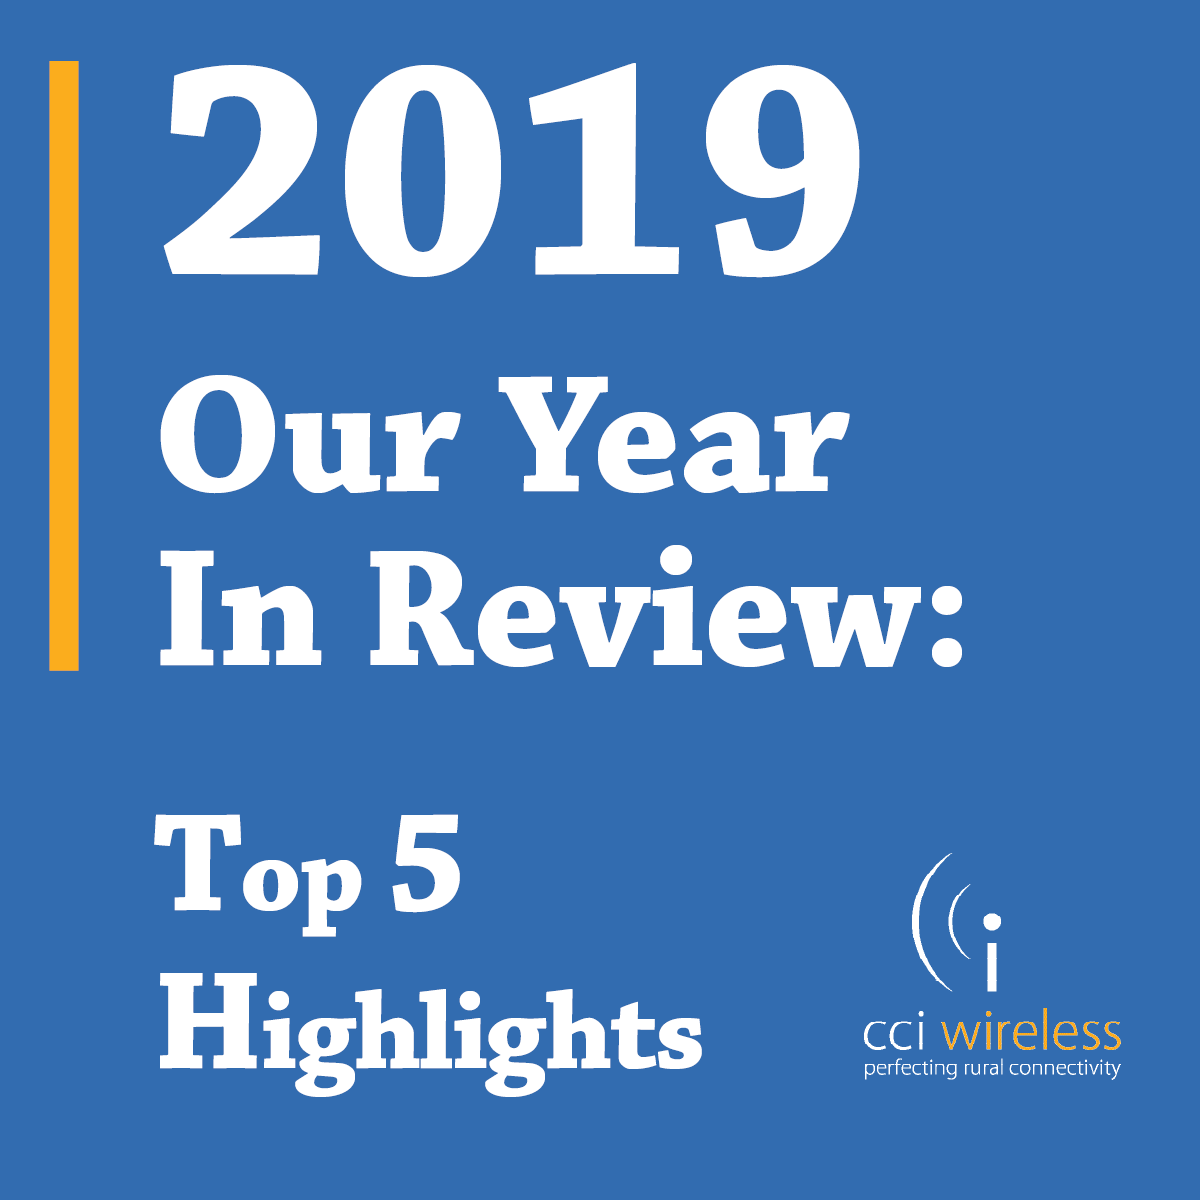 2019: Our Year In Review